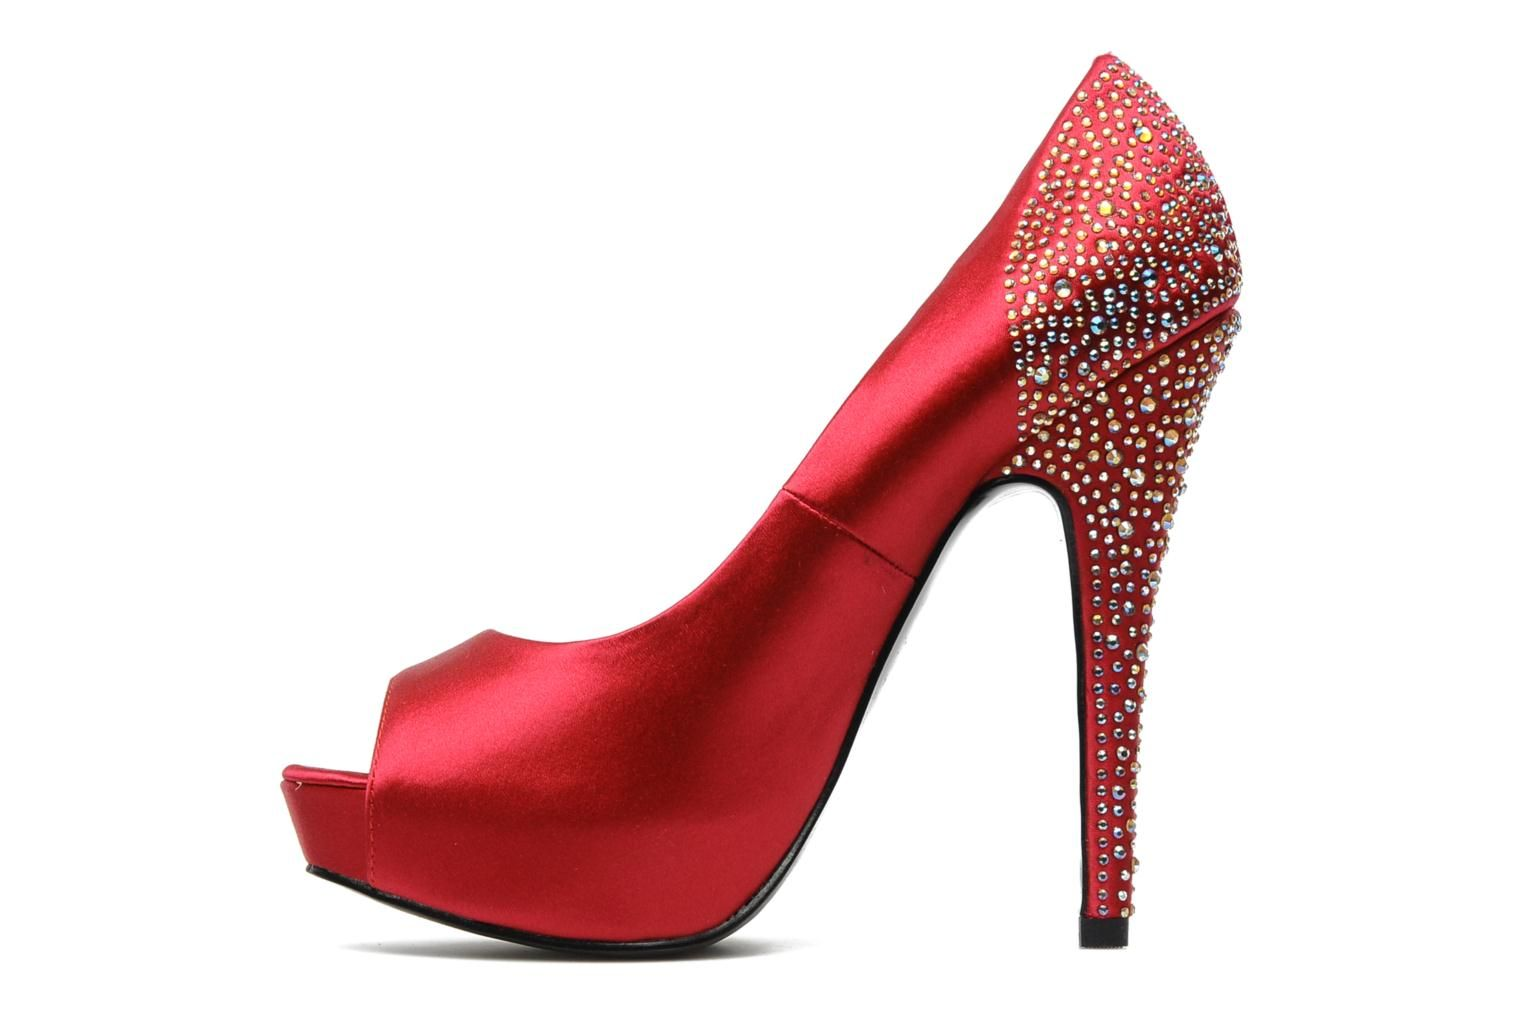 PLAYY-R Steve Madden (Rouge) Sarenza Automne-Hiver 2012, The Spy who loved me